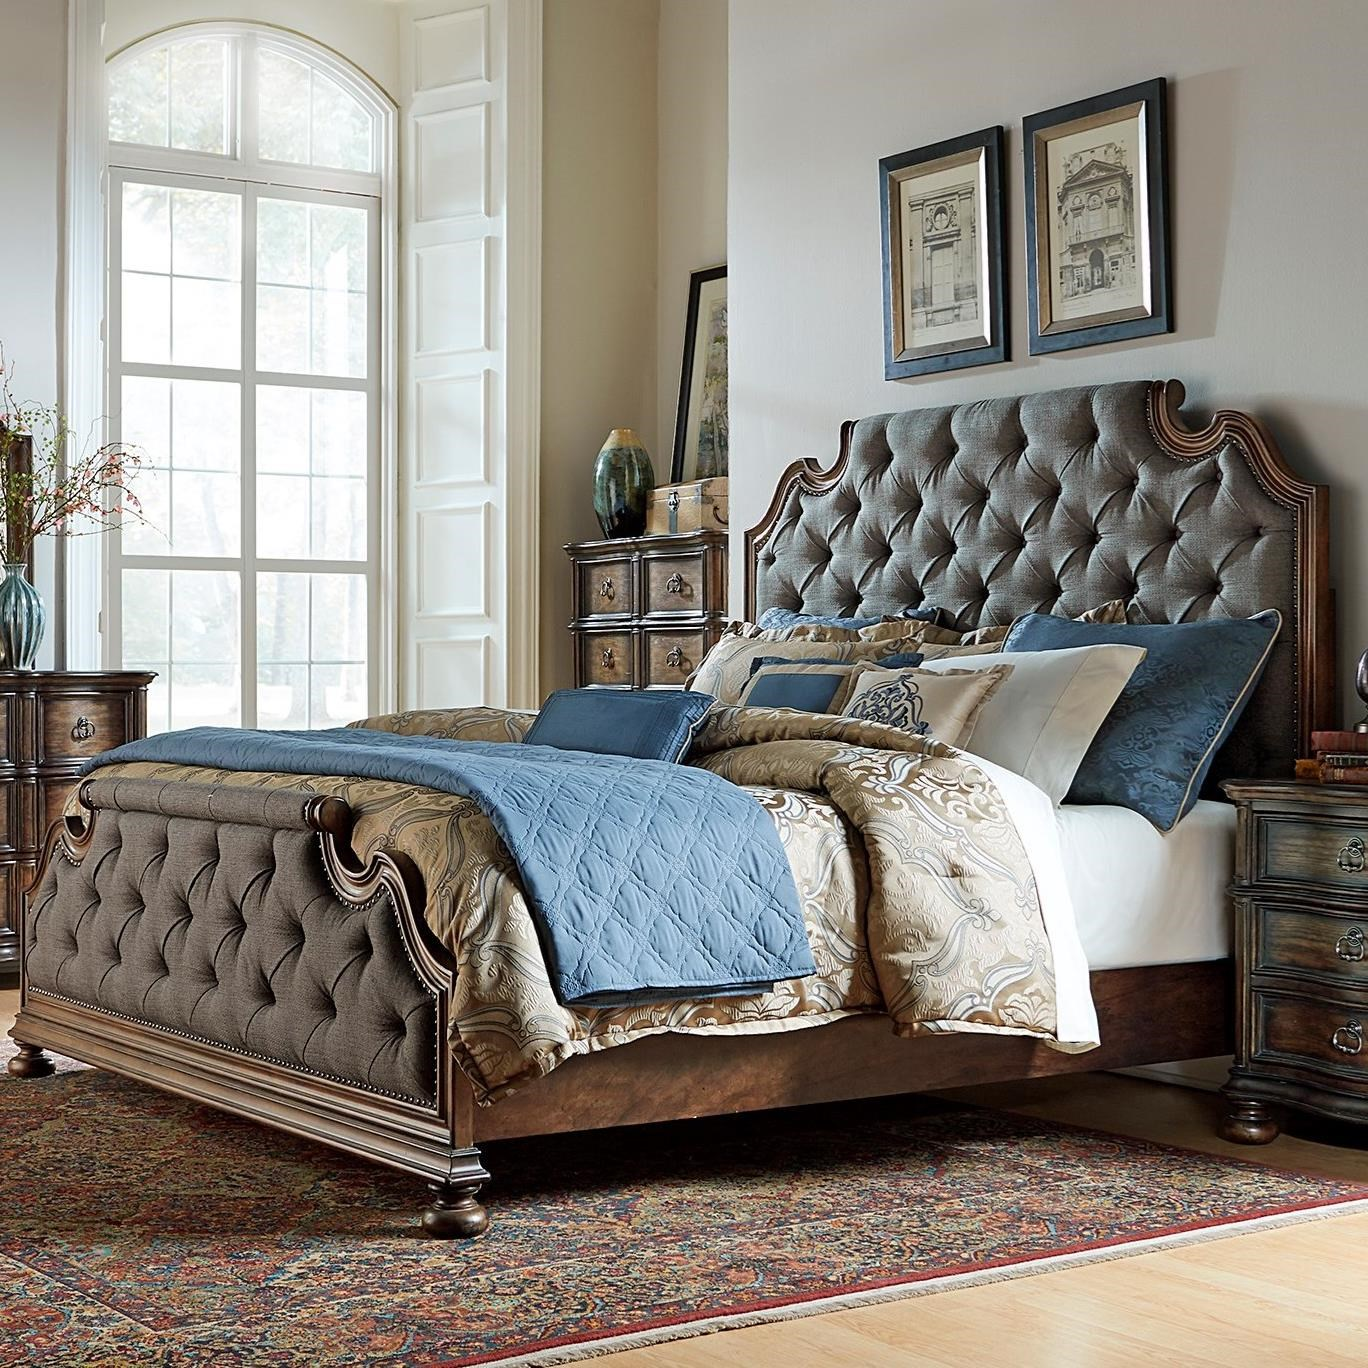 Liberty Furniture Tuscan Valley King Upholstered Bed - Item Number: 215-BR-KUB